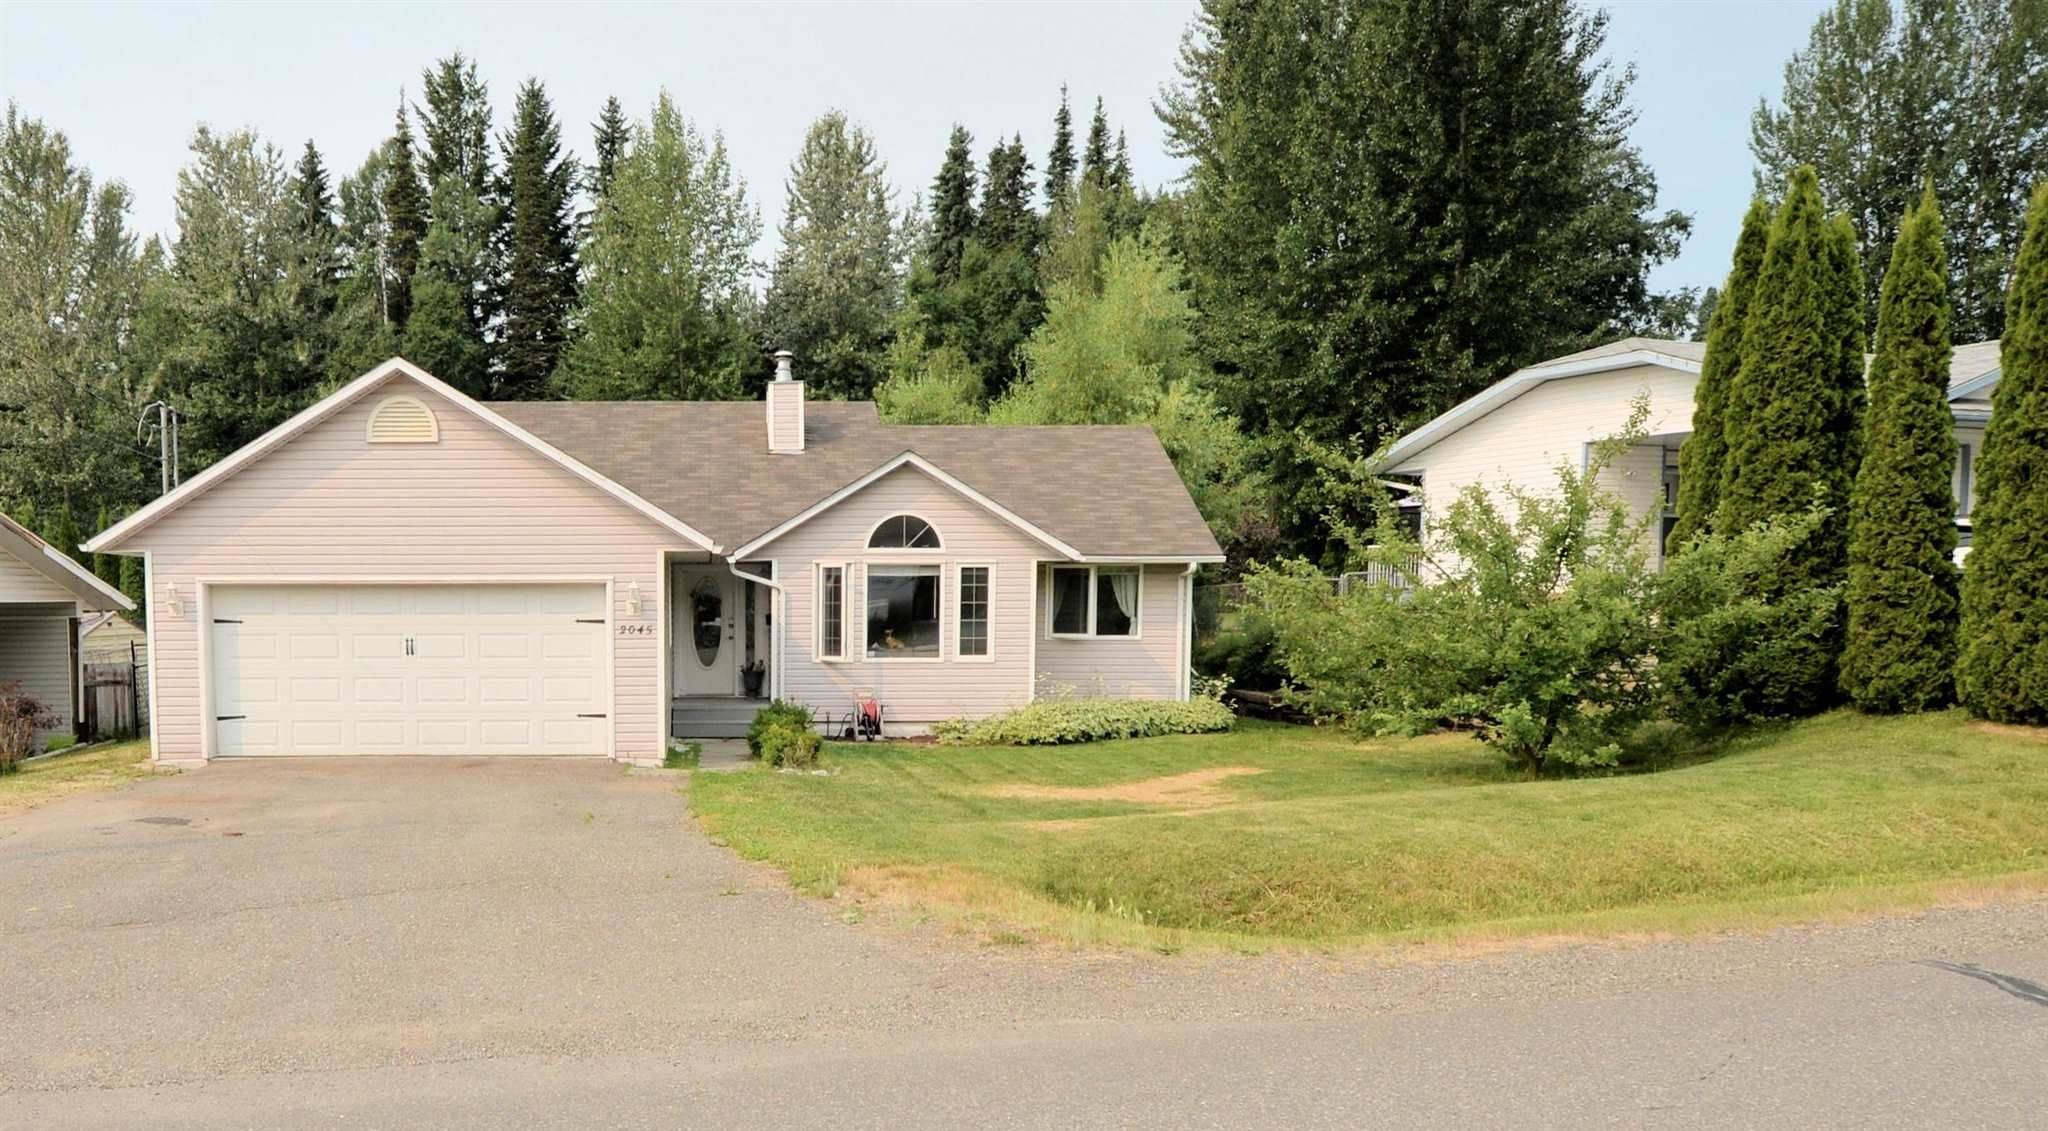 Main Photo: 2045 CROFT Road in Prince George: Ingala House for sale (PG City North (Zone 73))  : MLS®# R2600190